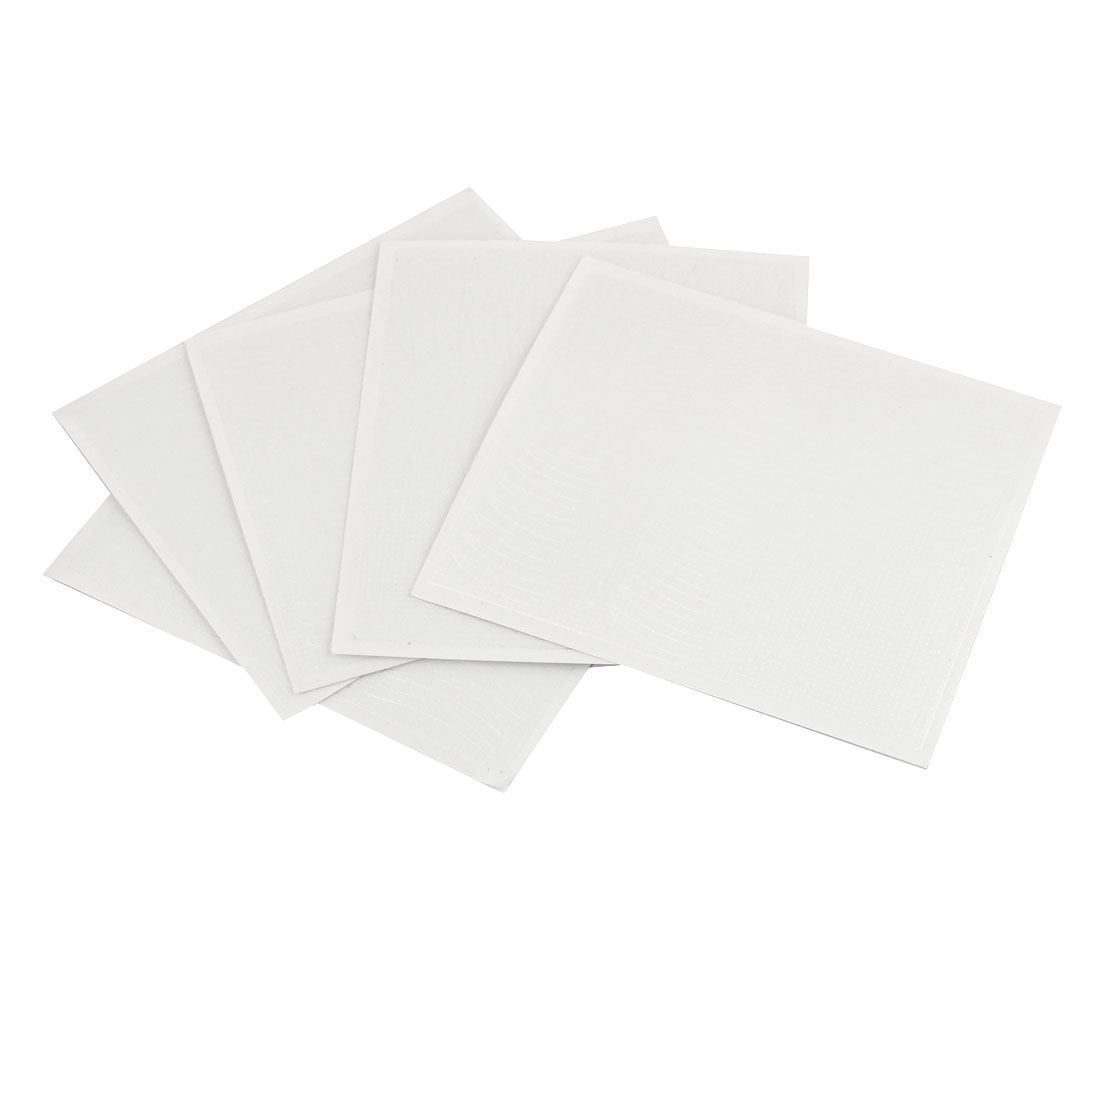 Self Adhesive Double Eyelid Maker Stickers Pads Tapes Clear White 120 Pairs